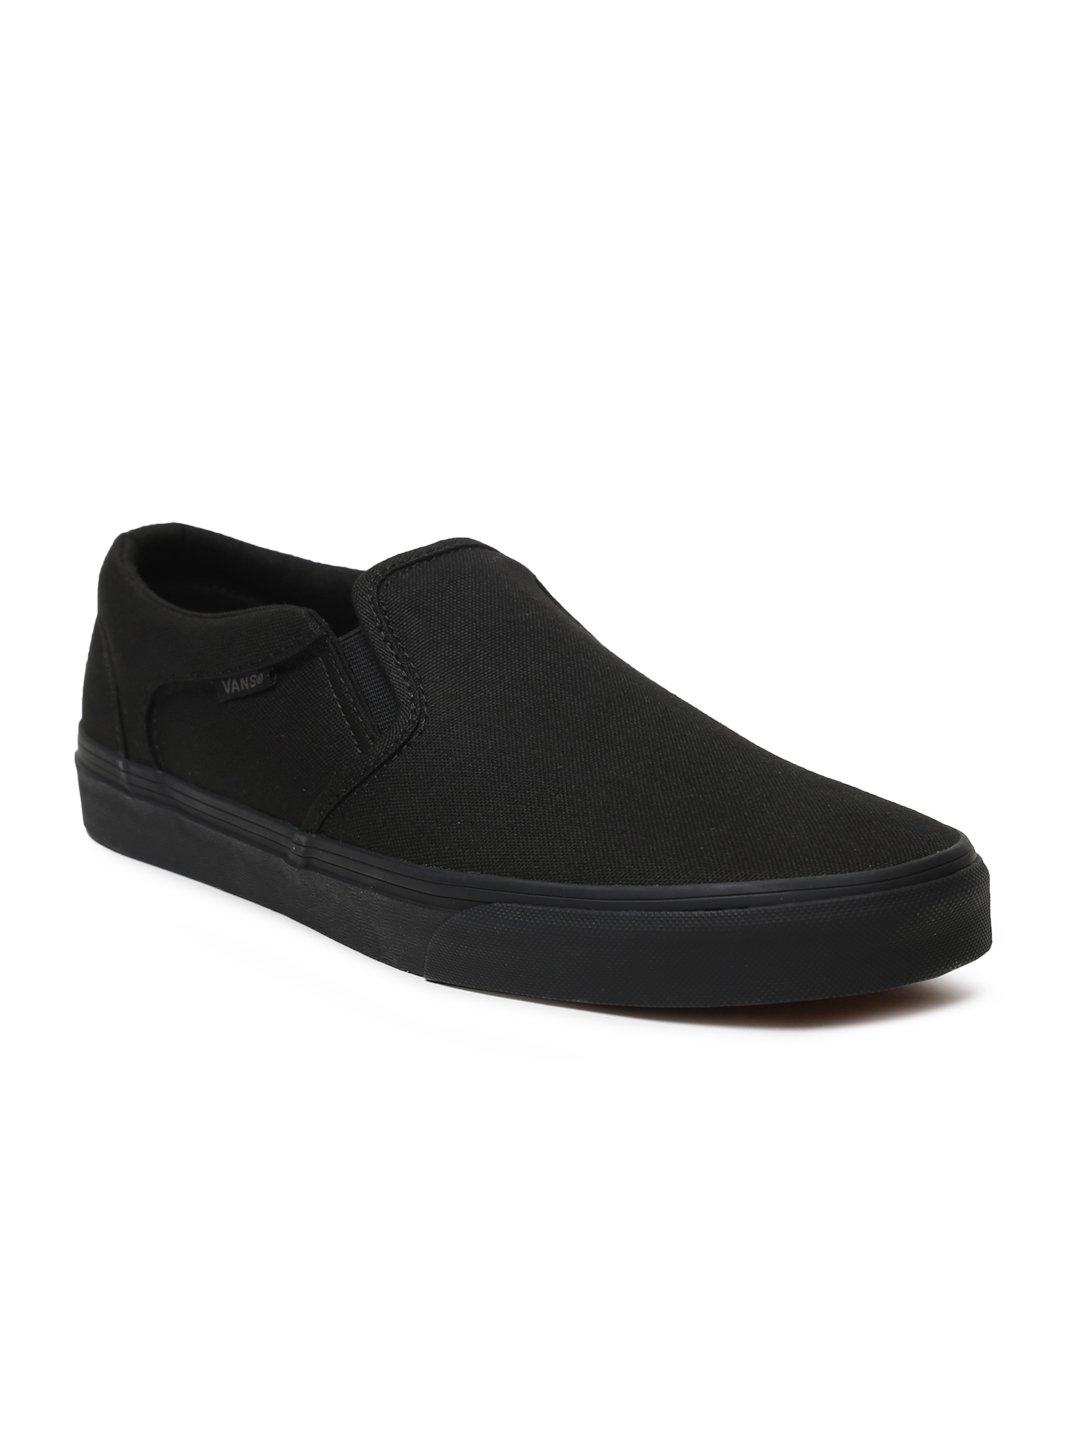 18ca2aa5e2a3ac Buy Vans Men Black Asher Slip On Sneakers - Casual Shoes for Men ...